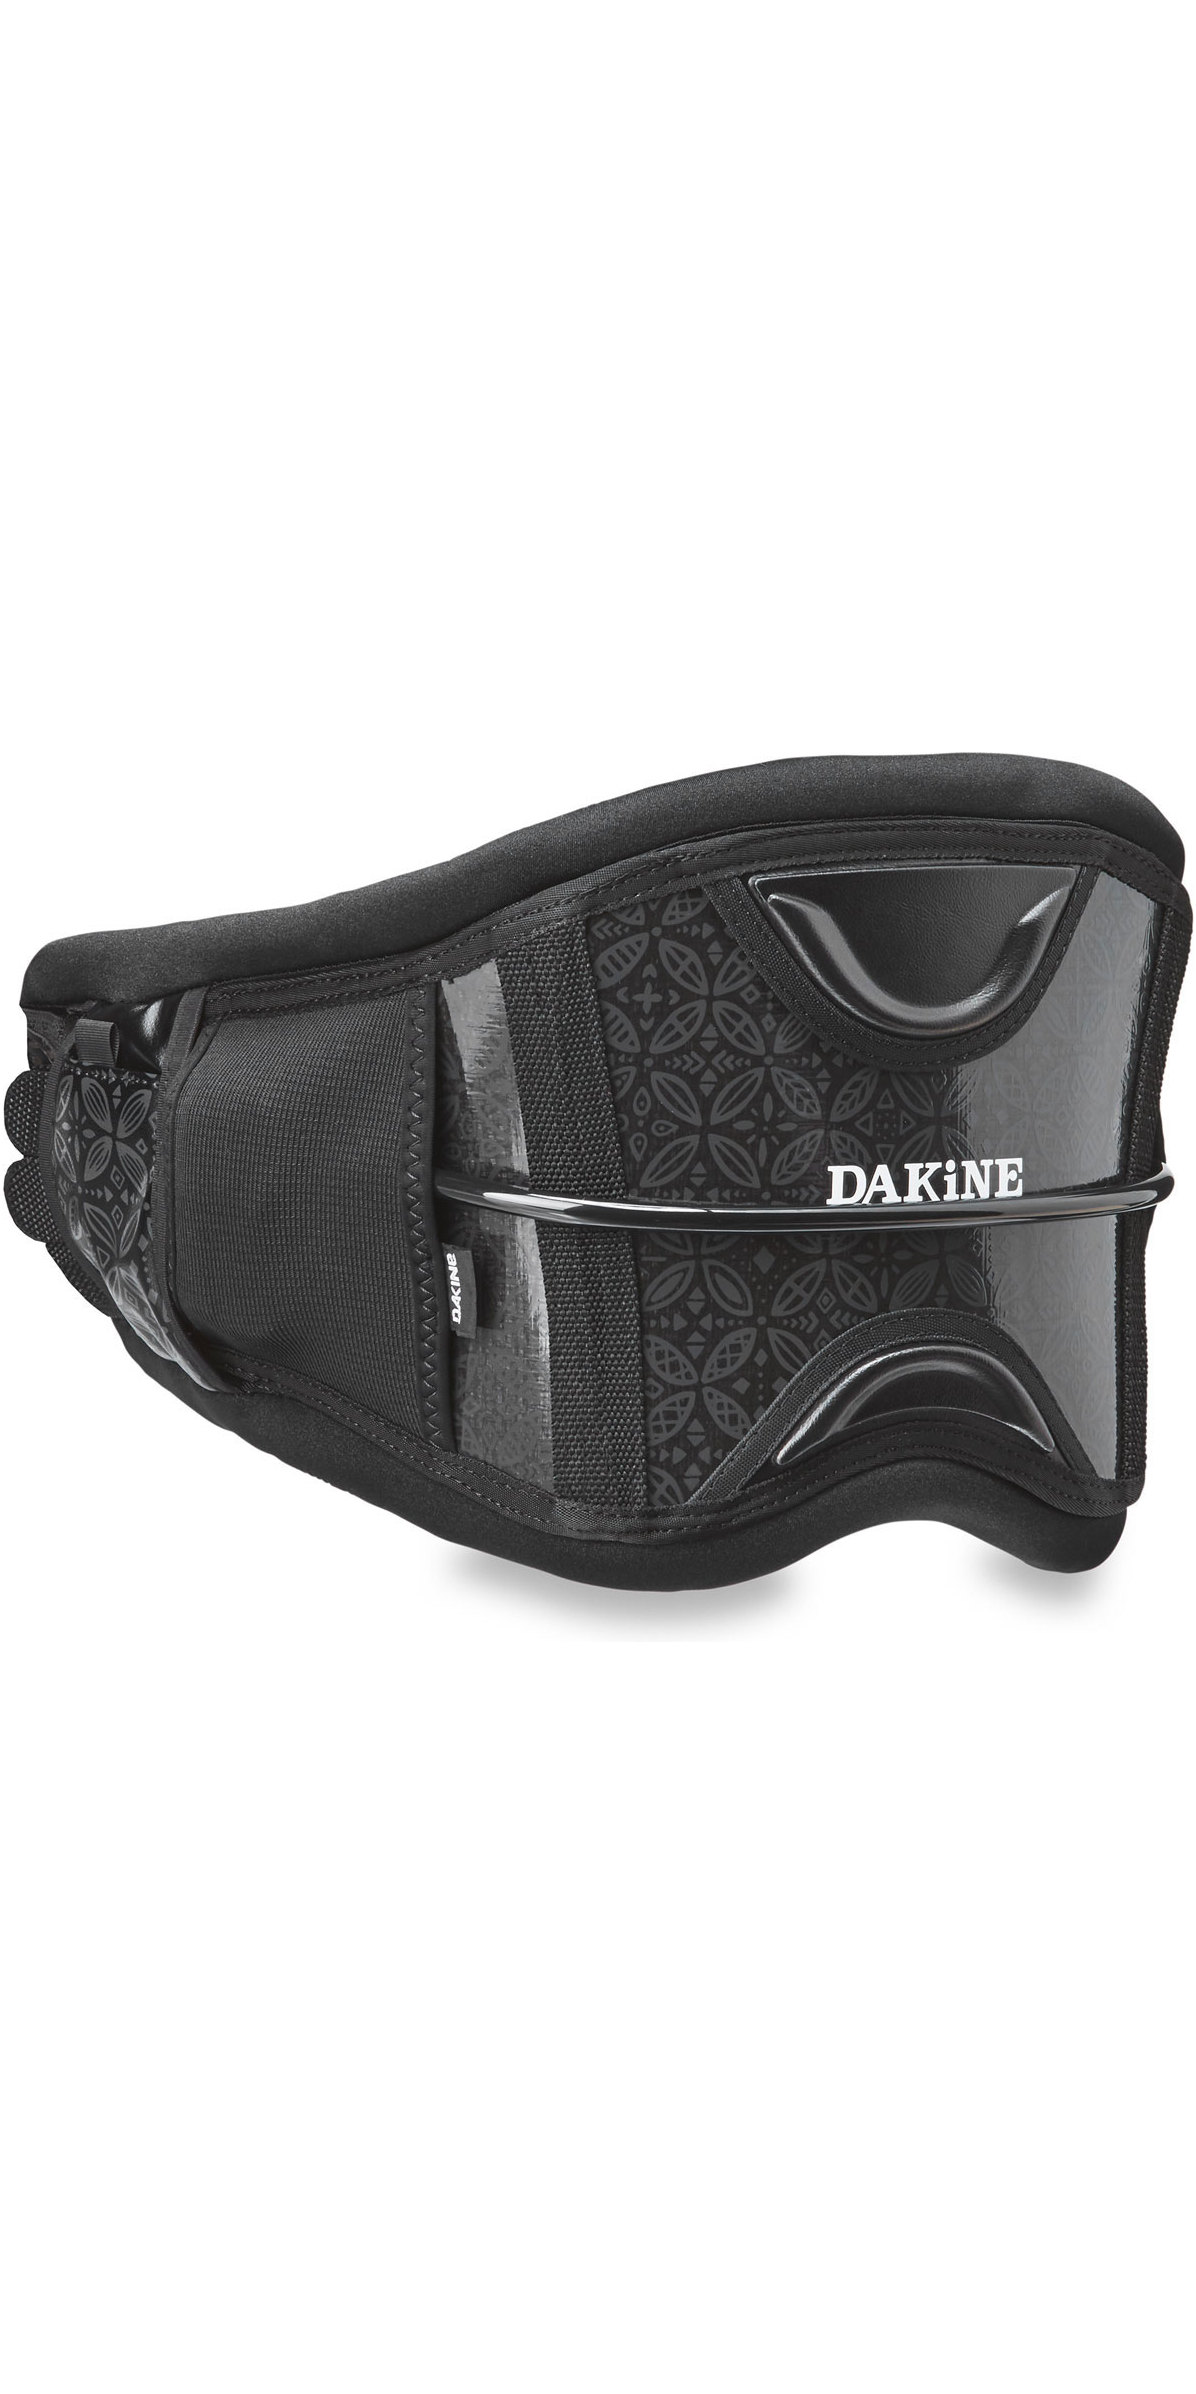 Bars 2018 Dakine Wahine Damen Kite Windsurf Harness Bay Islands 10001847 Weiterer Wassersport